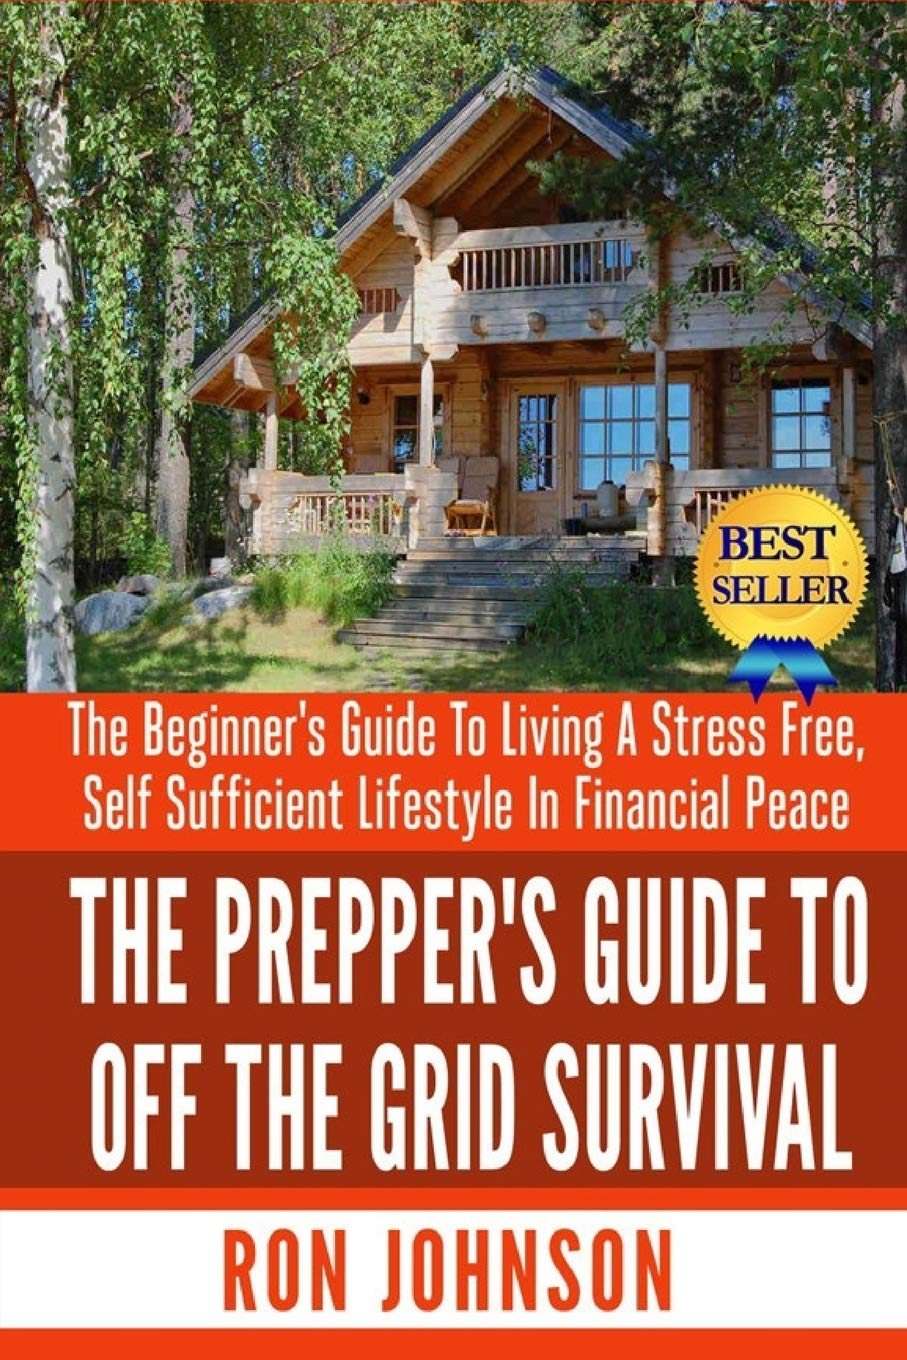 The Preppers Guide To Off the Grid Survival: The Beginners ...